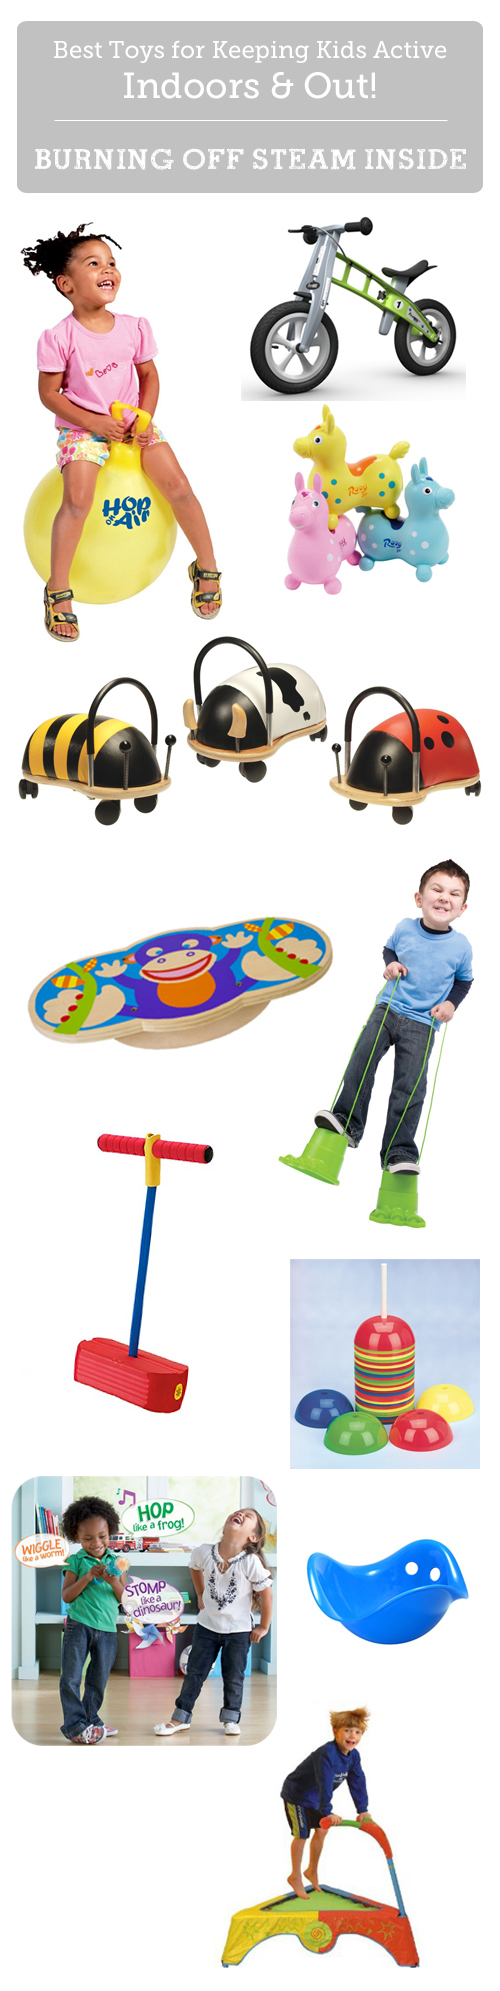 Top toys for kids to burn off steam indoors - many of these have been a life-saver during the rainy season!